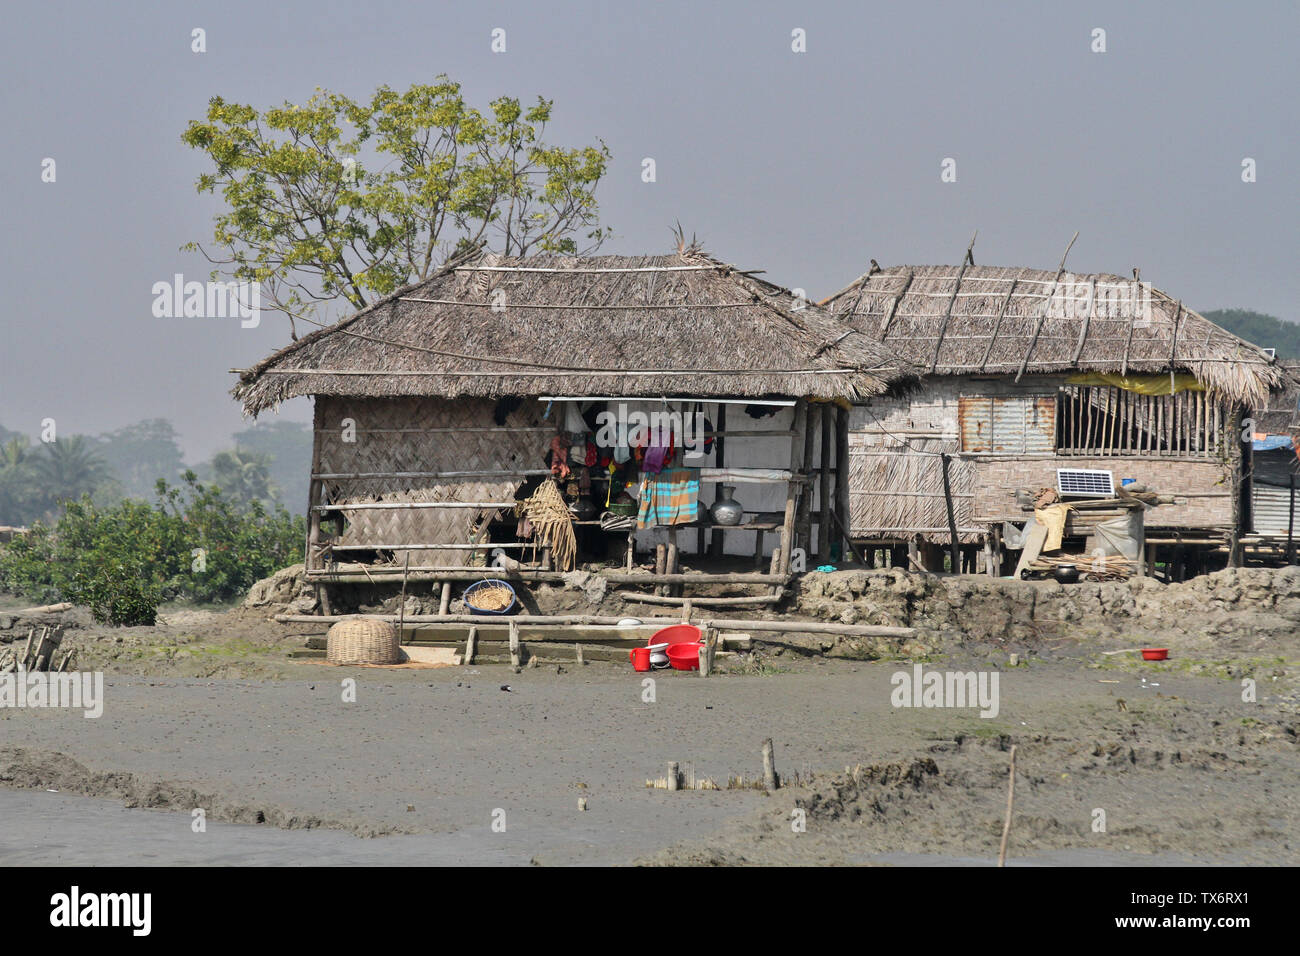 Khulna Stock Photos & Khulna Stock Images - Page 3 - Alamy